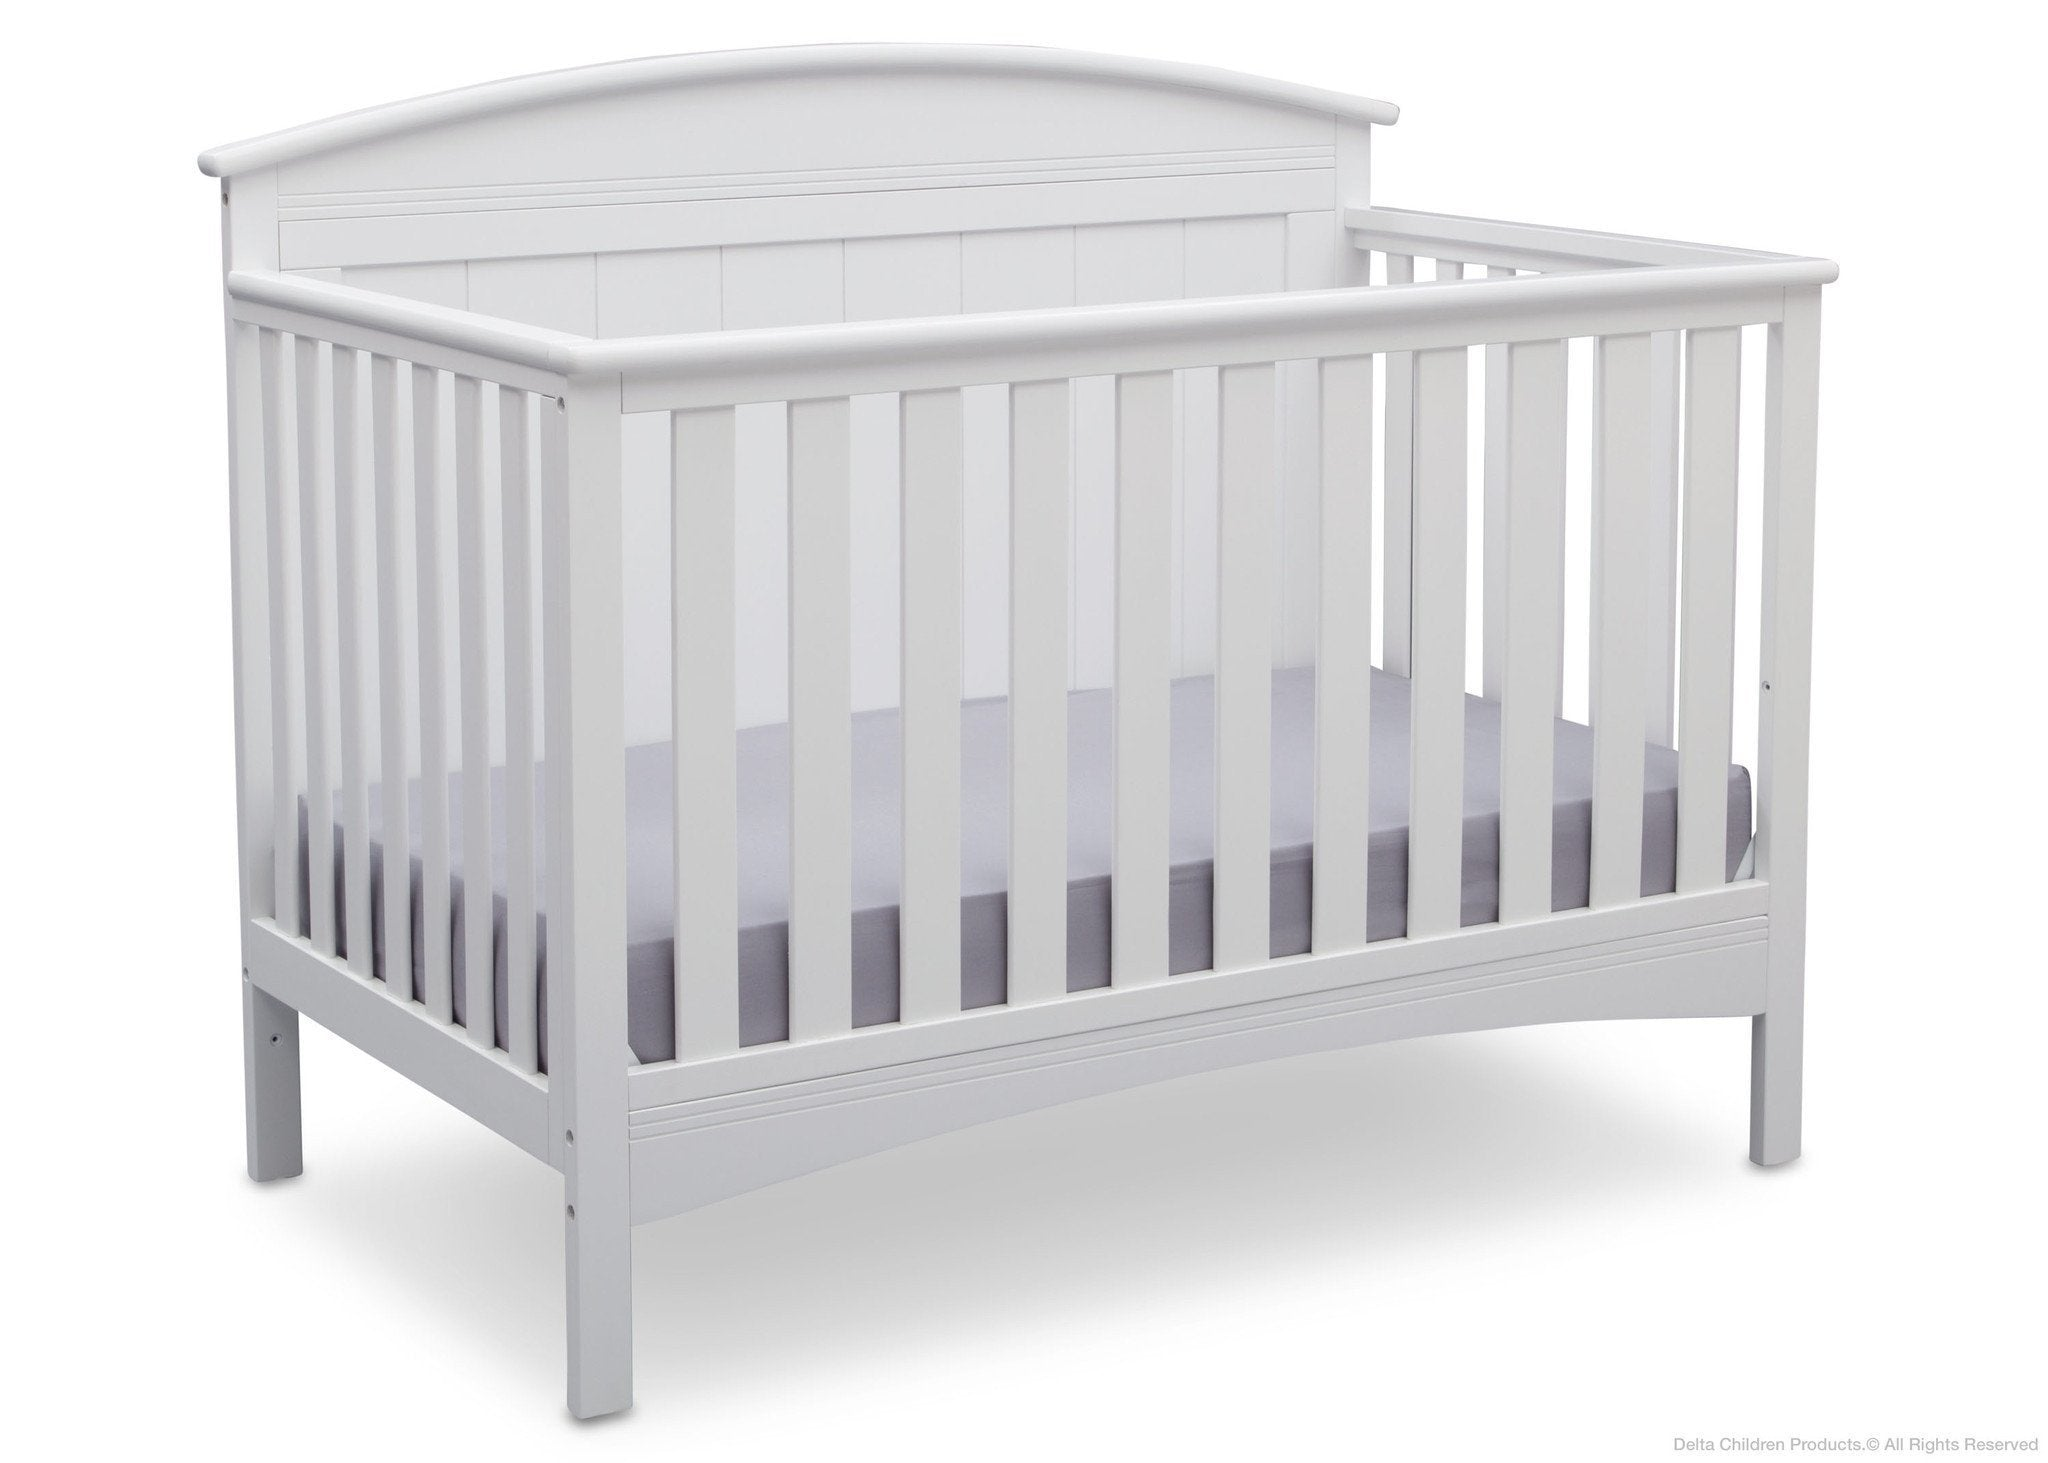 Delta Children Bianca (130) Archer 4-in-1 Crib Side View b3b